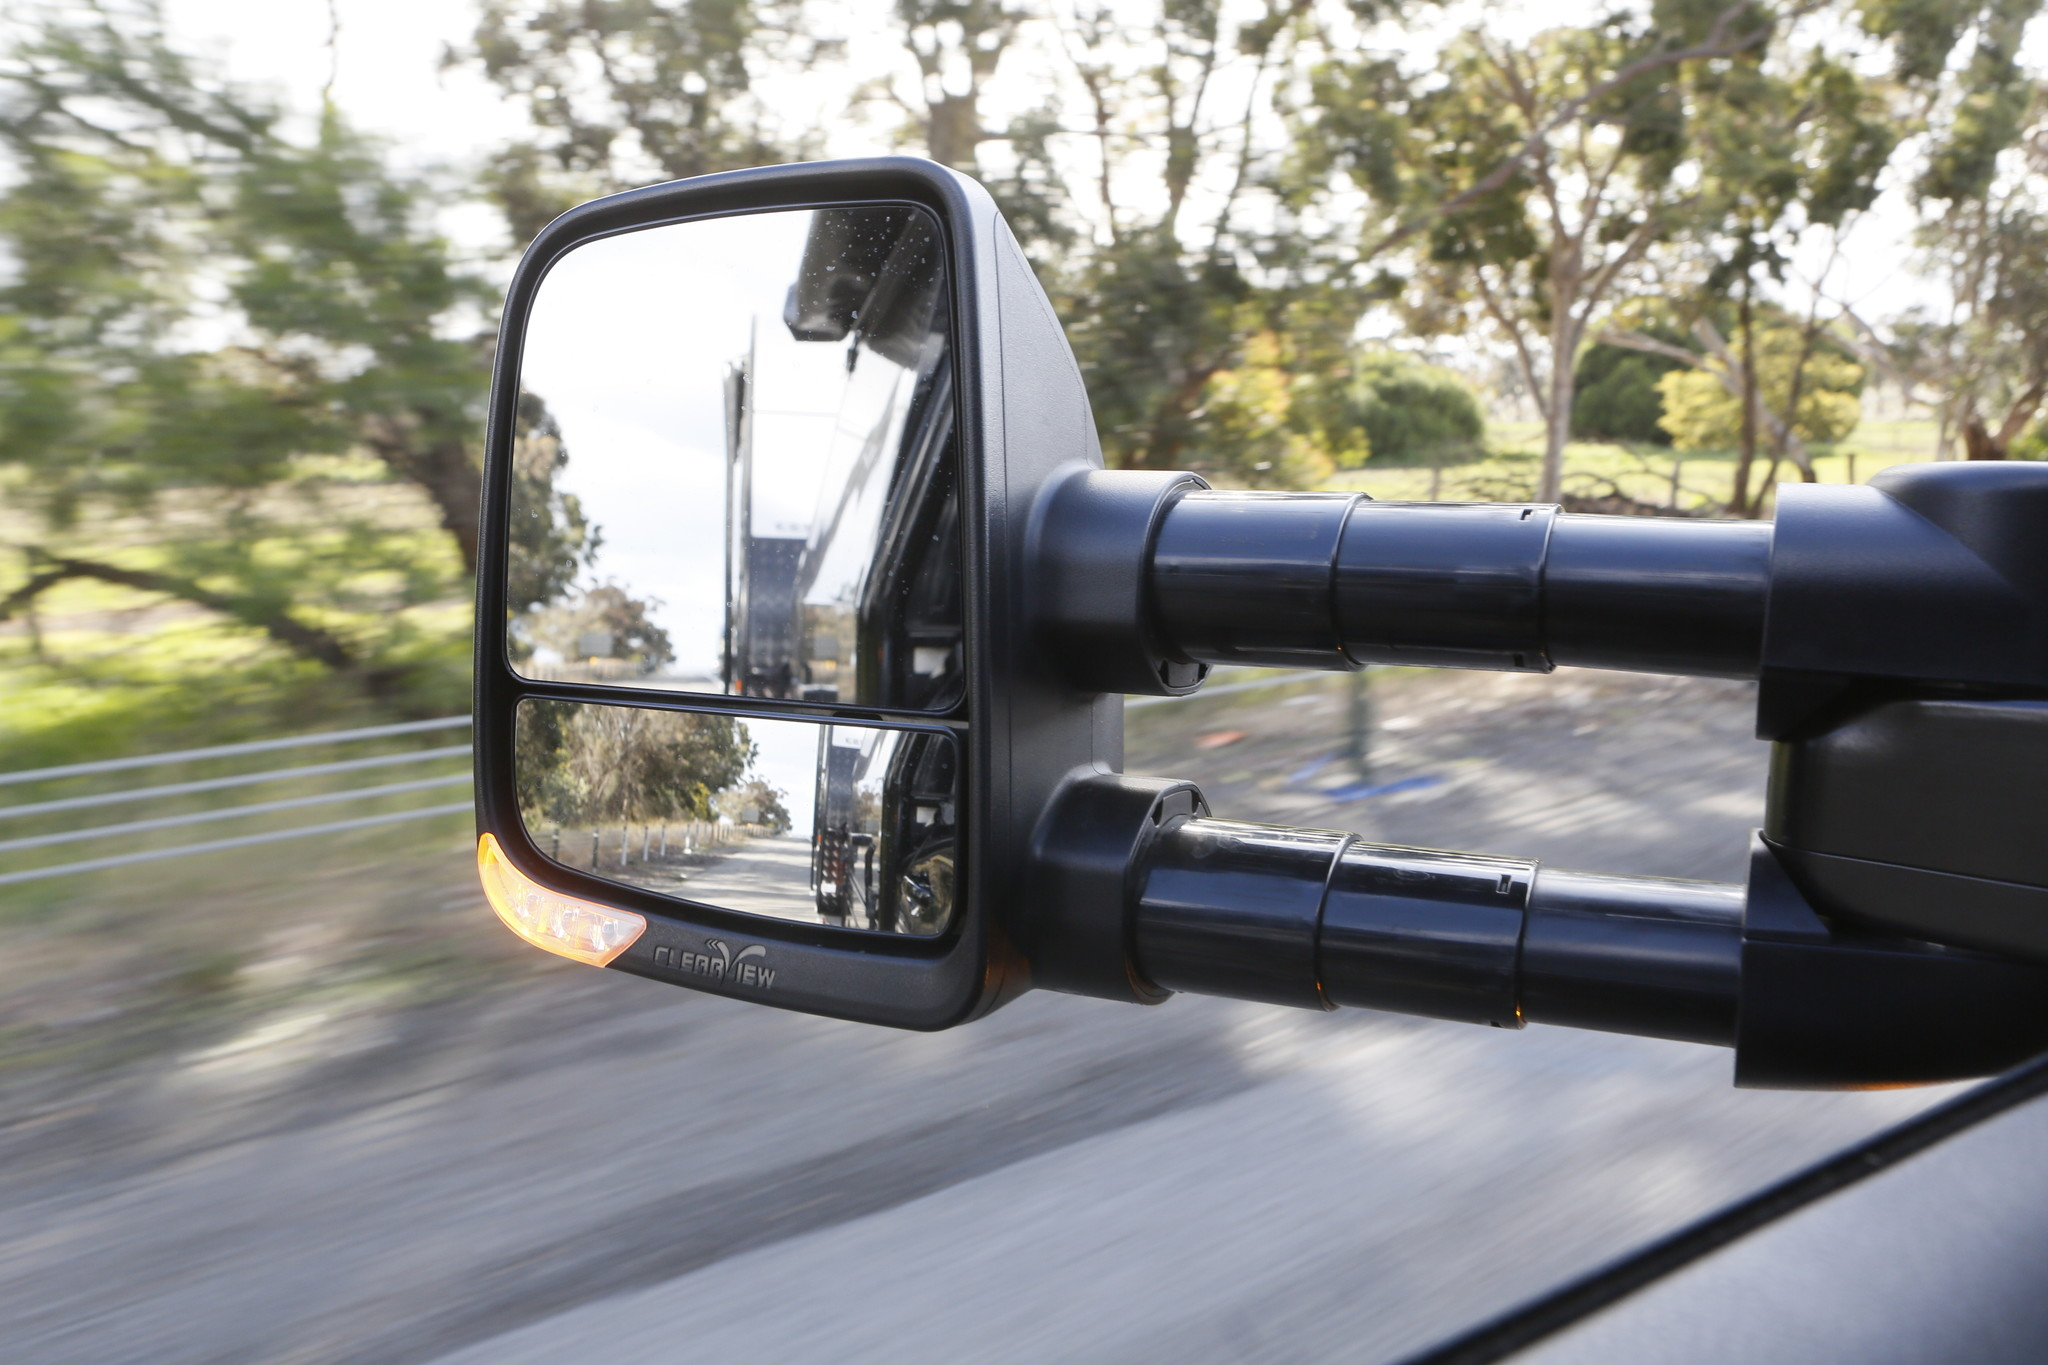 ford NEXT GENERATION: Clearview Extra breite spiegel Ford Ranger PJ/PK